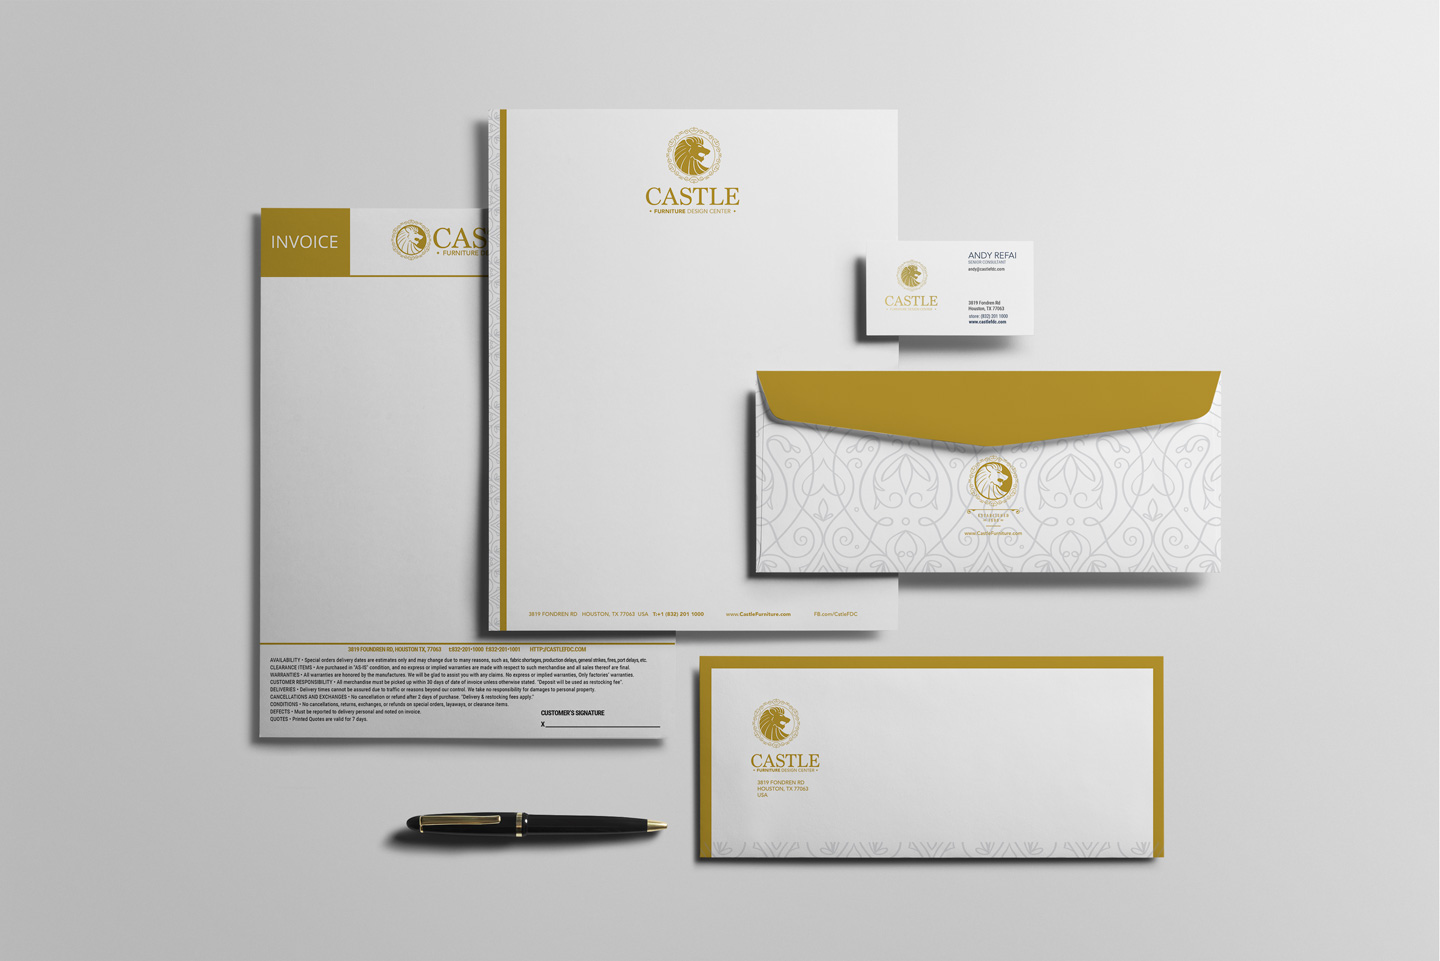 corporate identity design with envelope, business card, invoice, and letter head